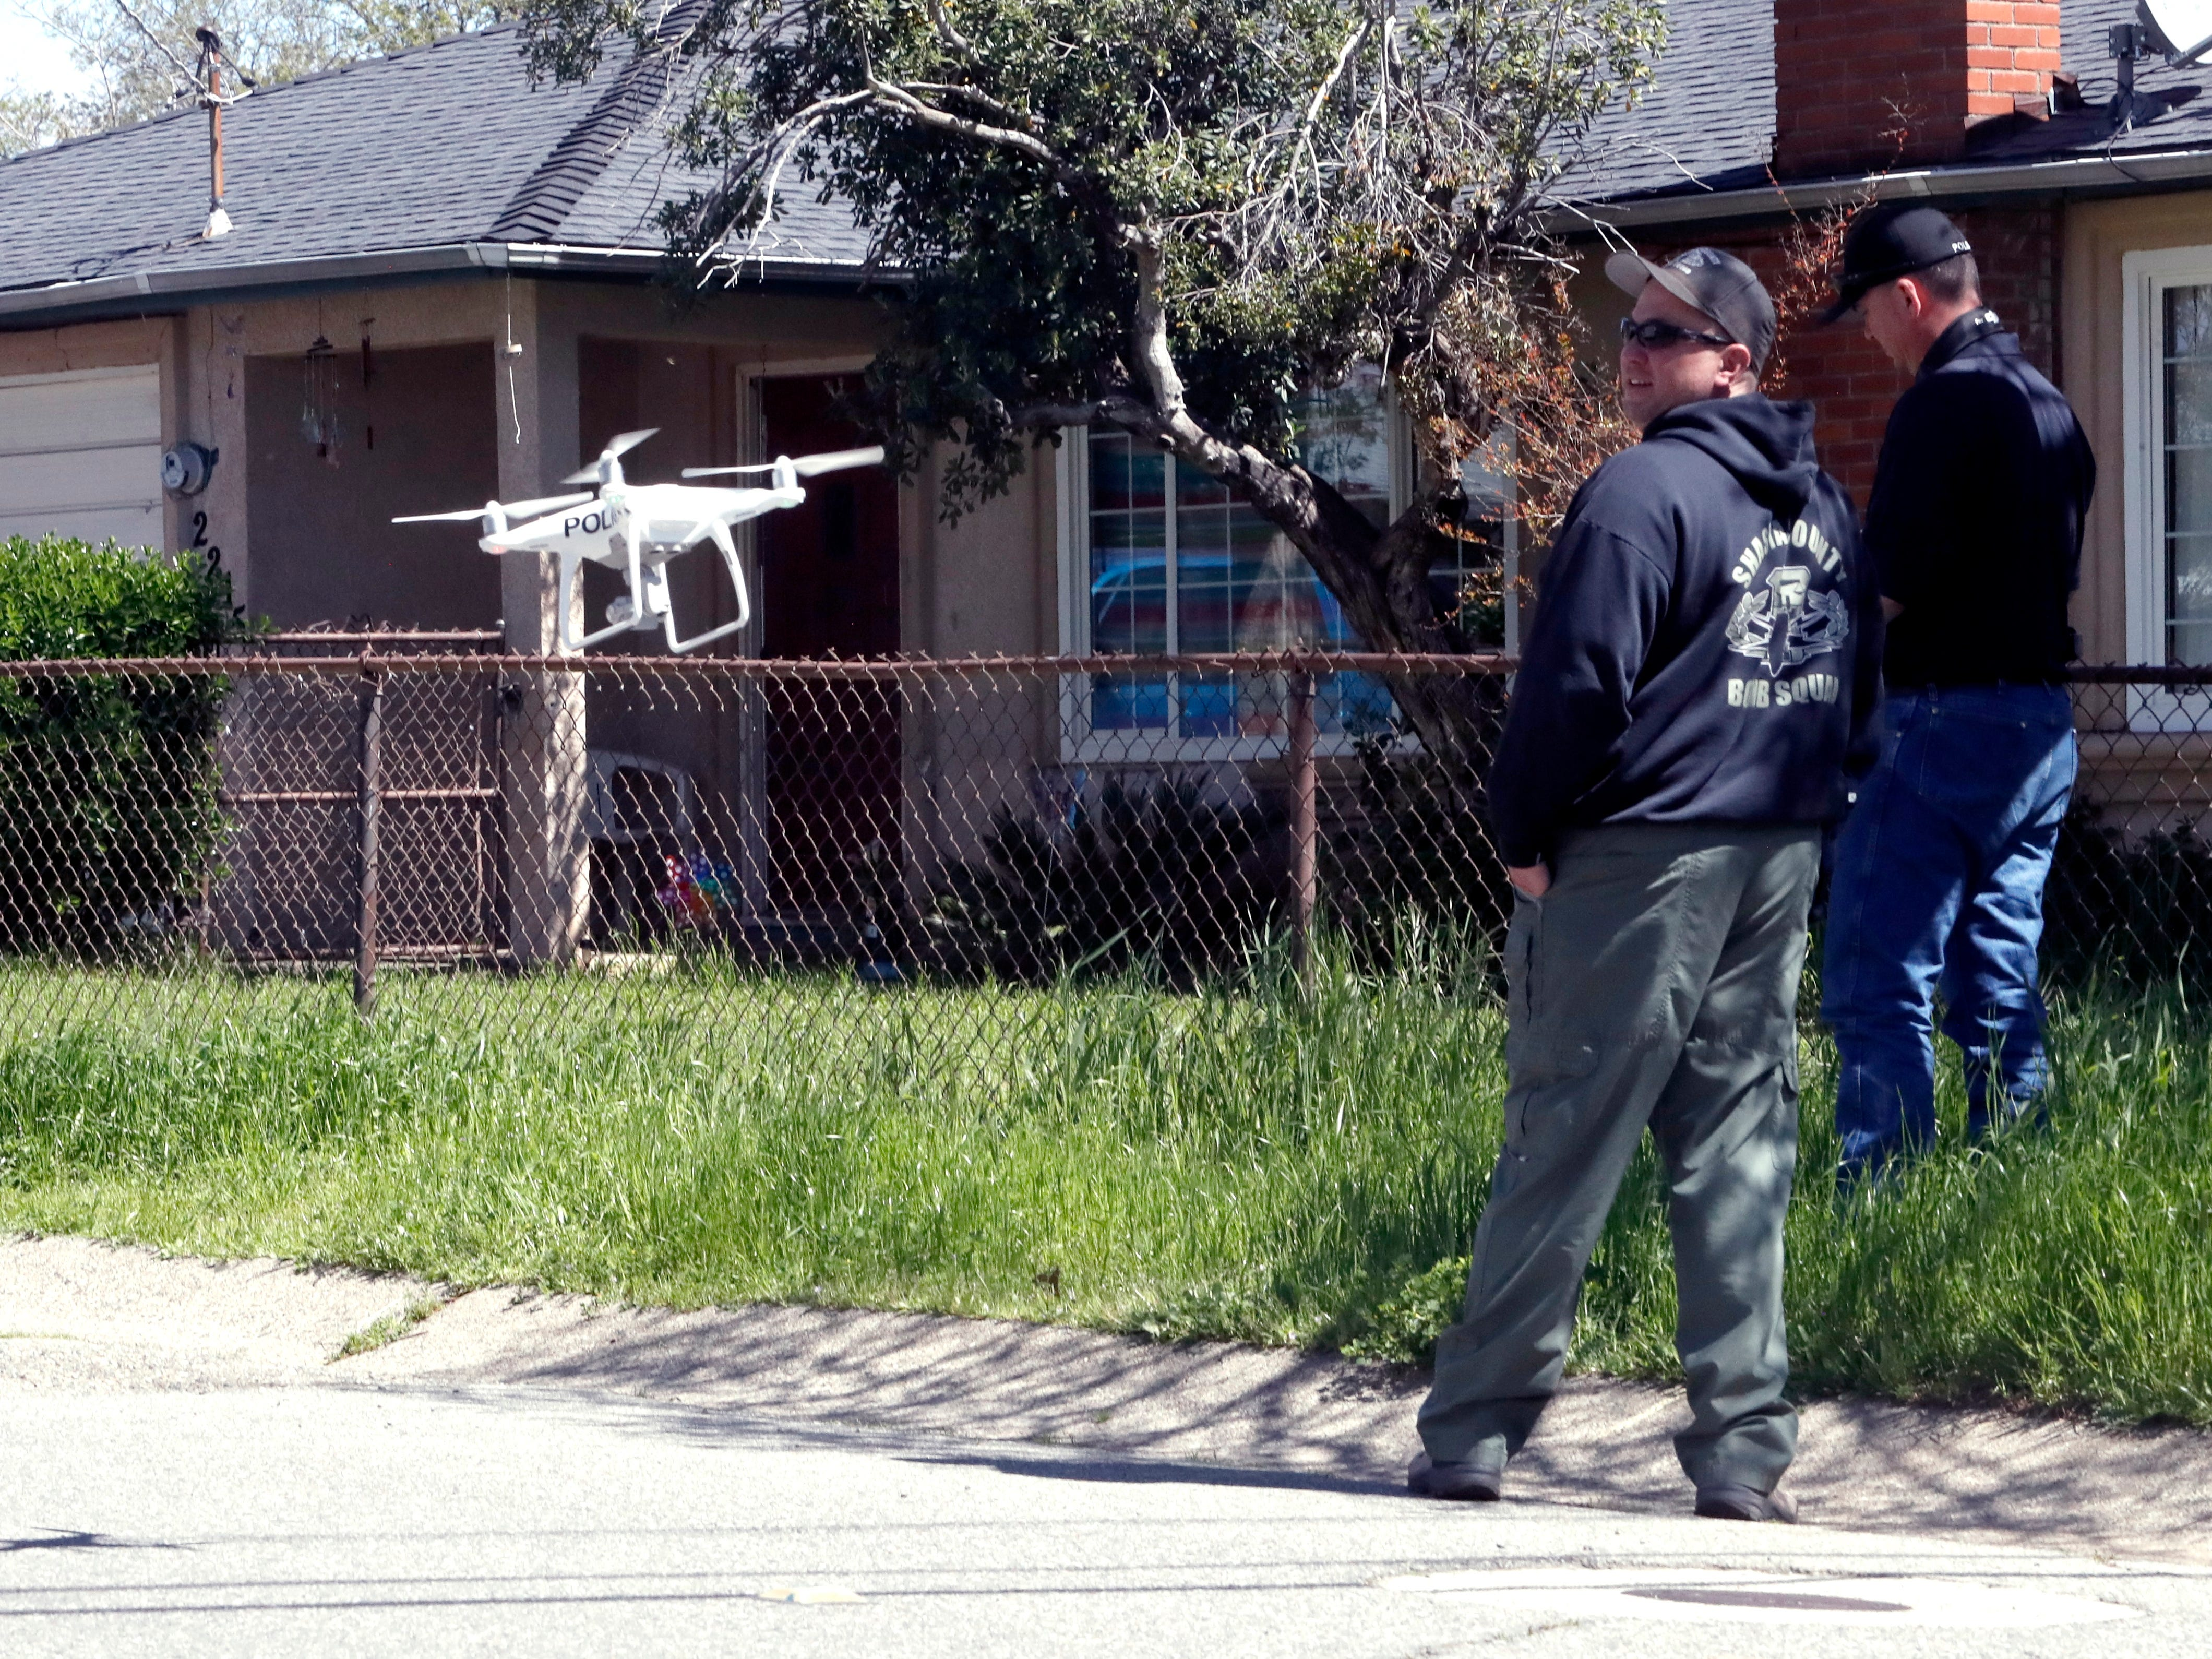 Redding police used two drones to check out the 2100 block of Oxford Road on Friday where a man fire a gun inside a residence.